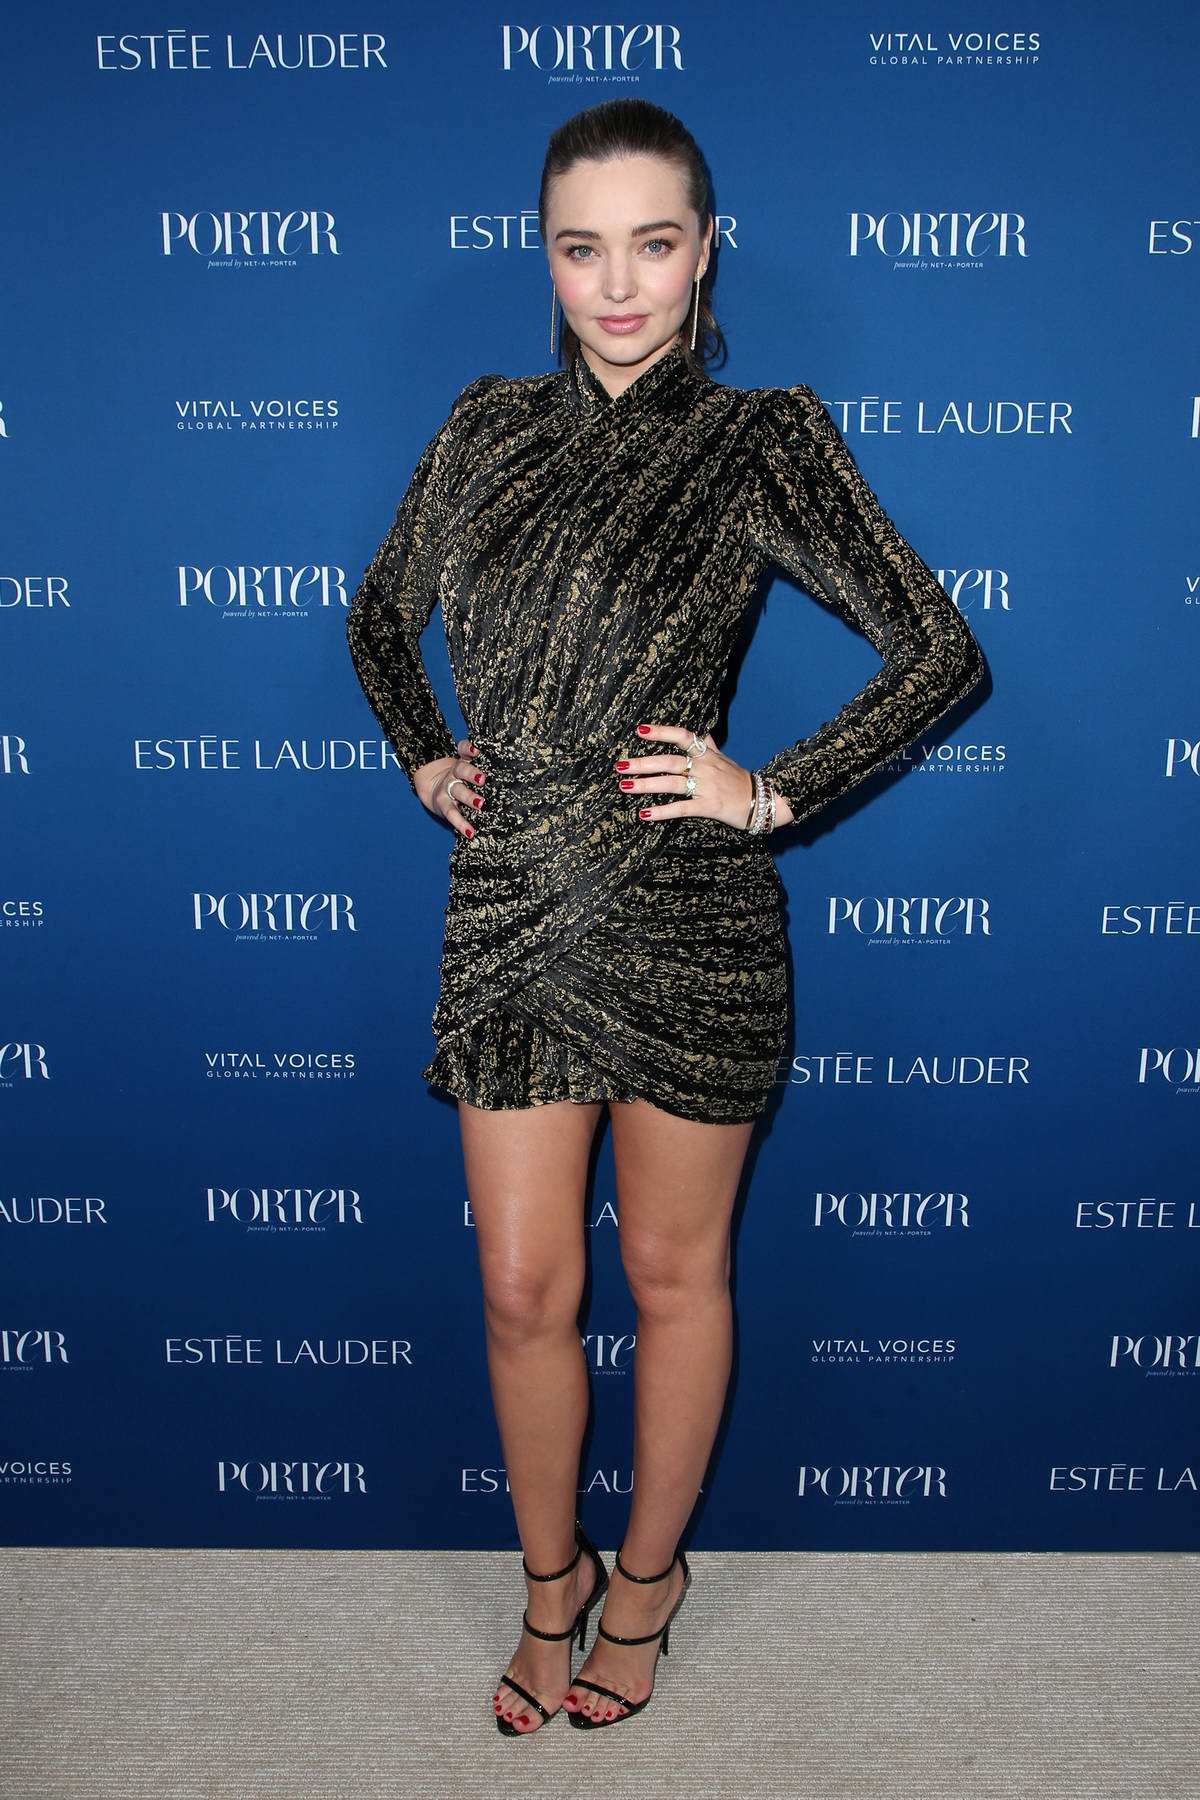 Miranda Kerr attends Porter's 3rd Annual Incredible Women Gala in Los Angeles